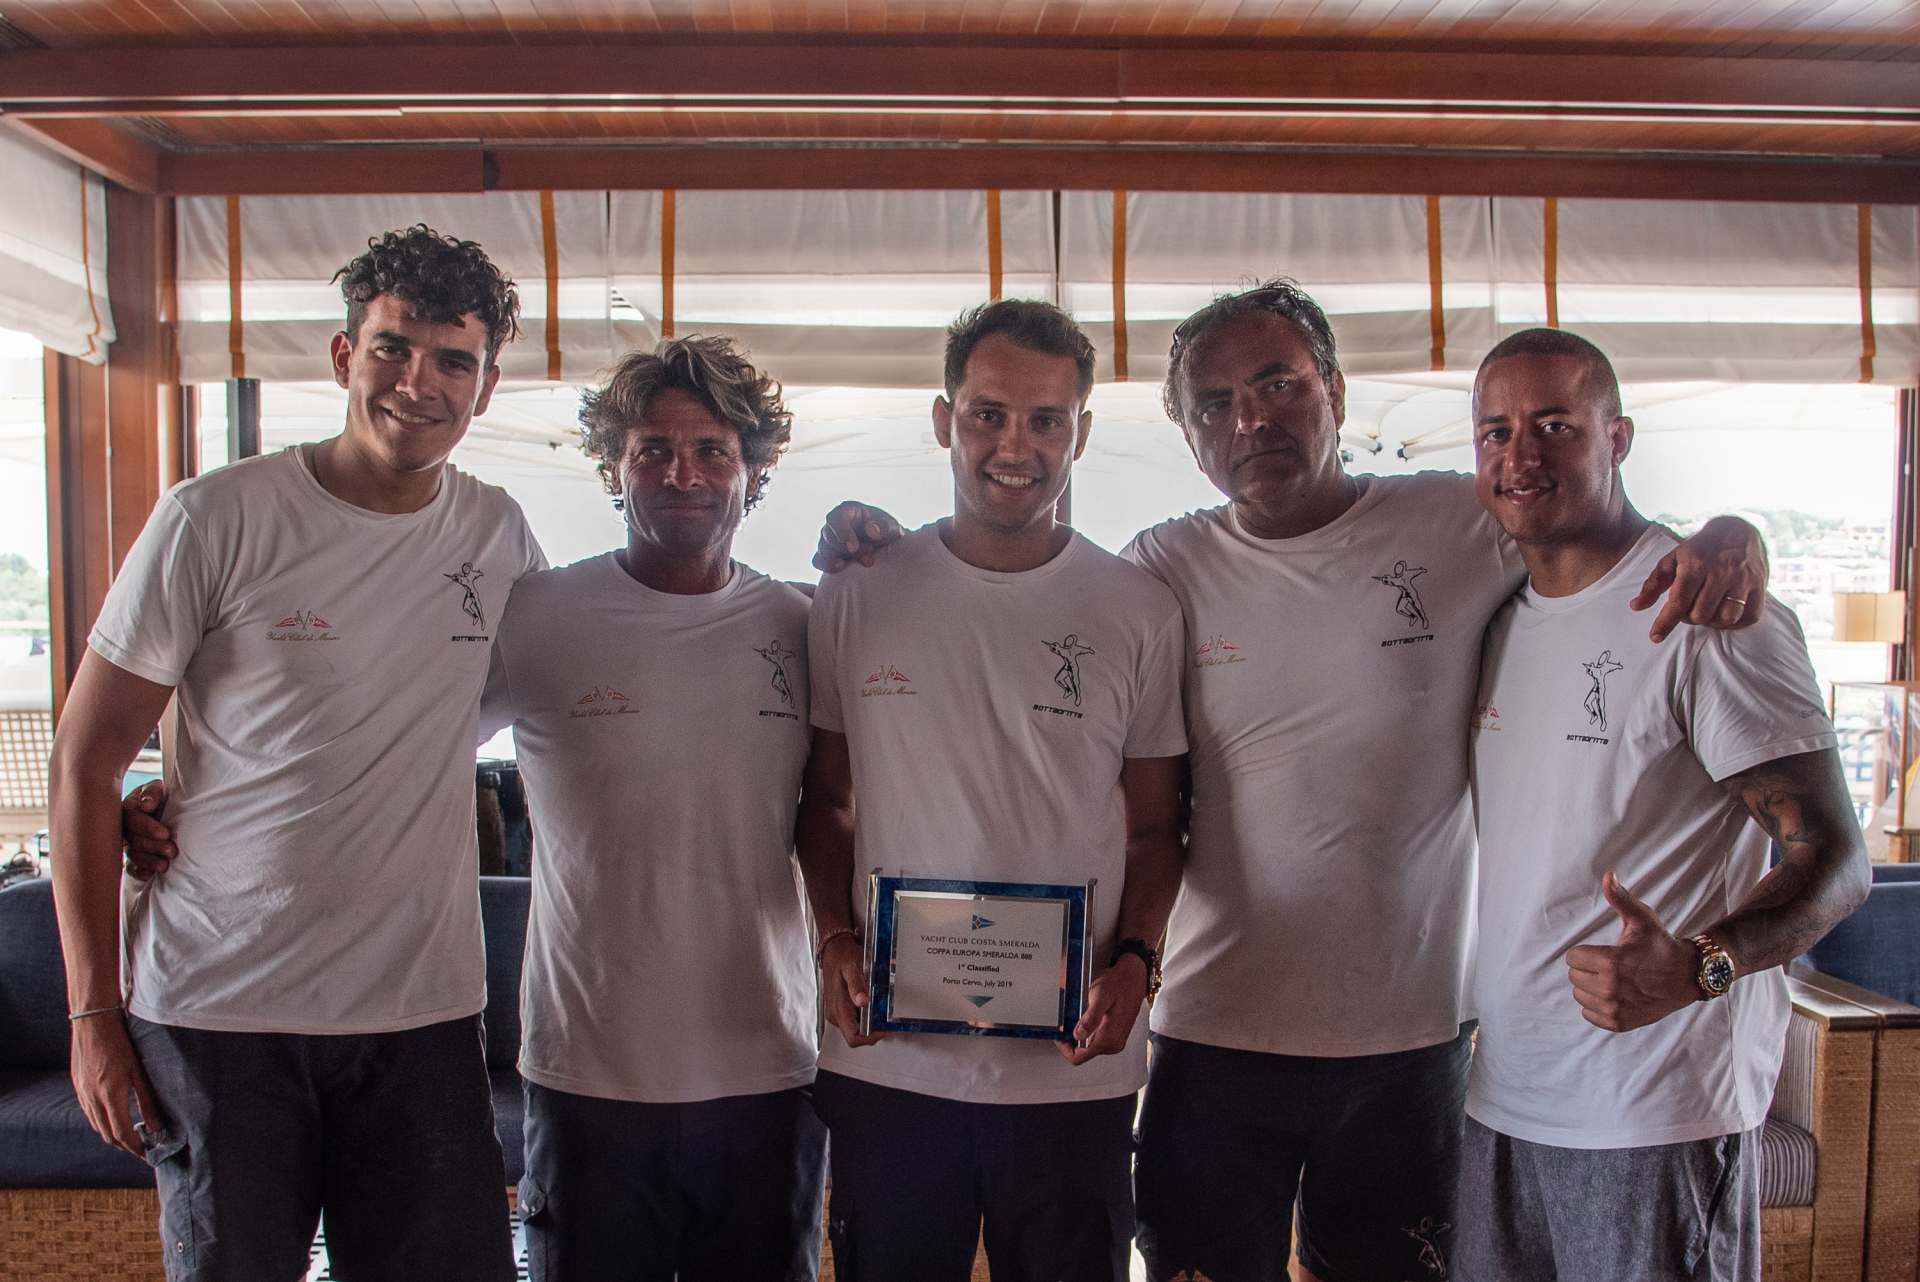 Coppa Europa Smeralda 888, Botta Dritta wins 2019 edition - NEWS - Yacht Club Costa Smeralda